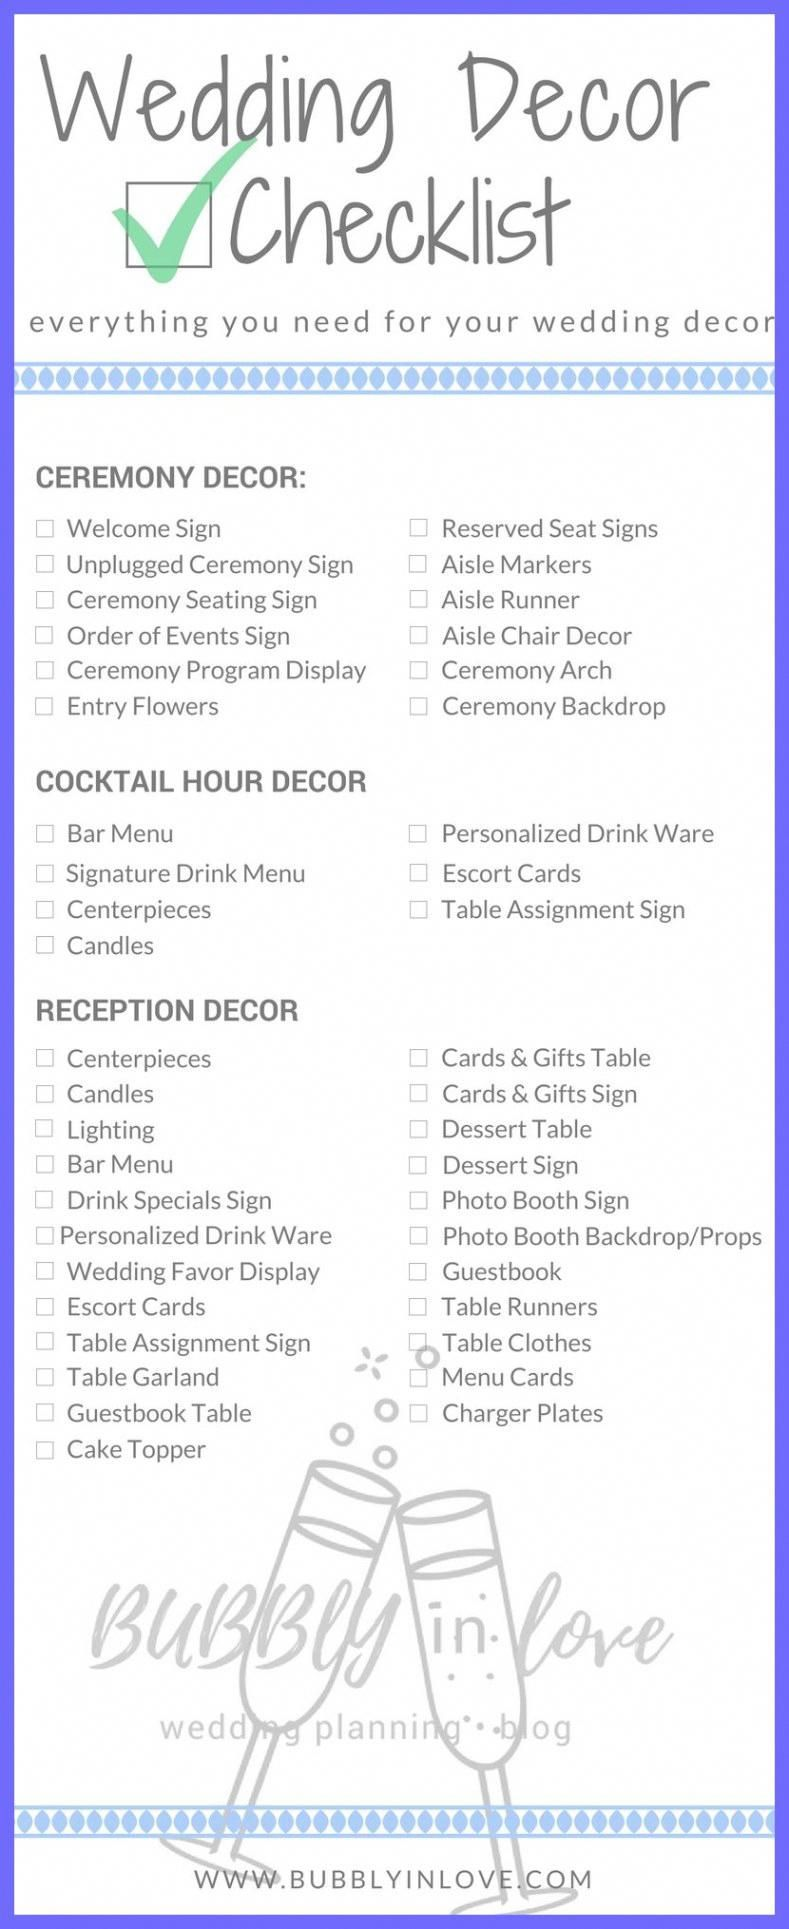 Wedding Reception Checklist Wedding Decorations Wedding Checklist Wedding Decor Wedding Decoration Checklist Wedding Reception Checklist Cocktail Hour Decor